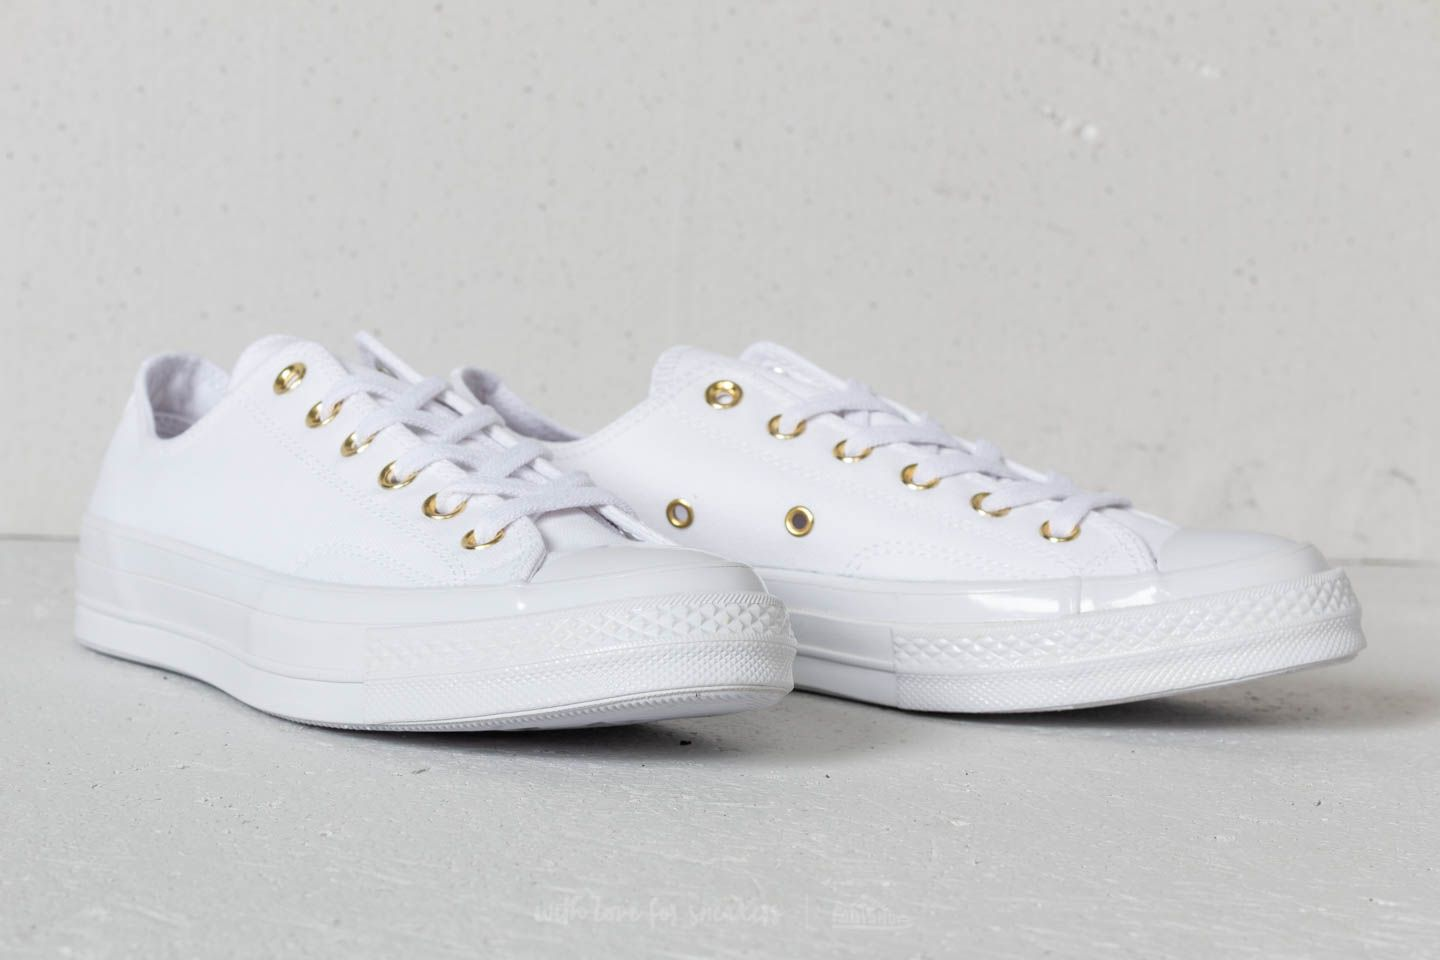 Converse Chuck Taylor All Star 70 Ox White White Cherry Blossom   Footshop